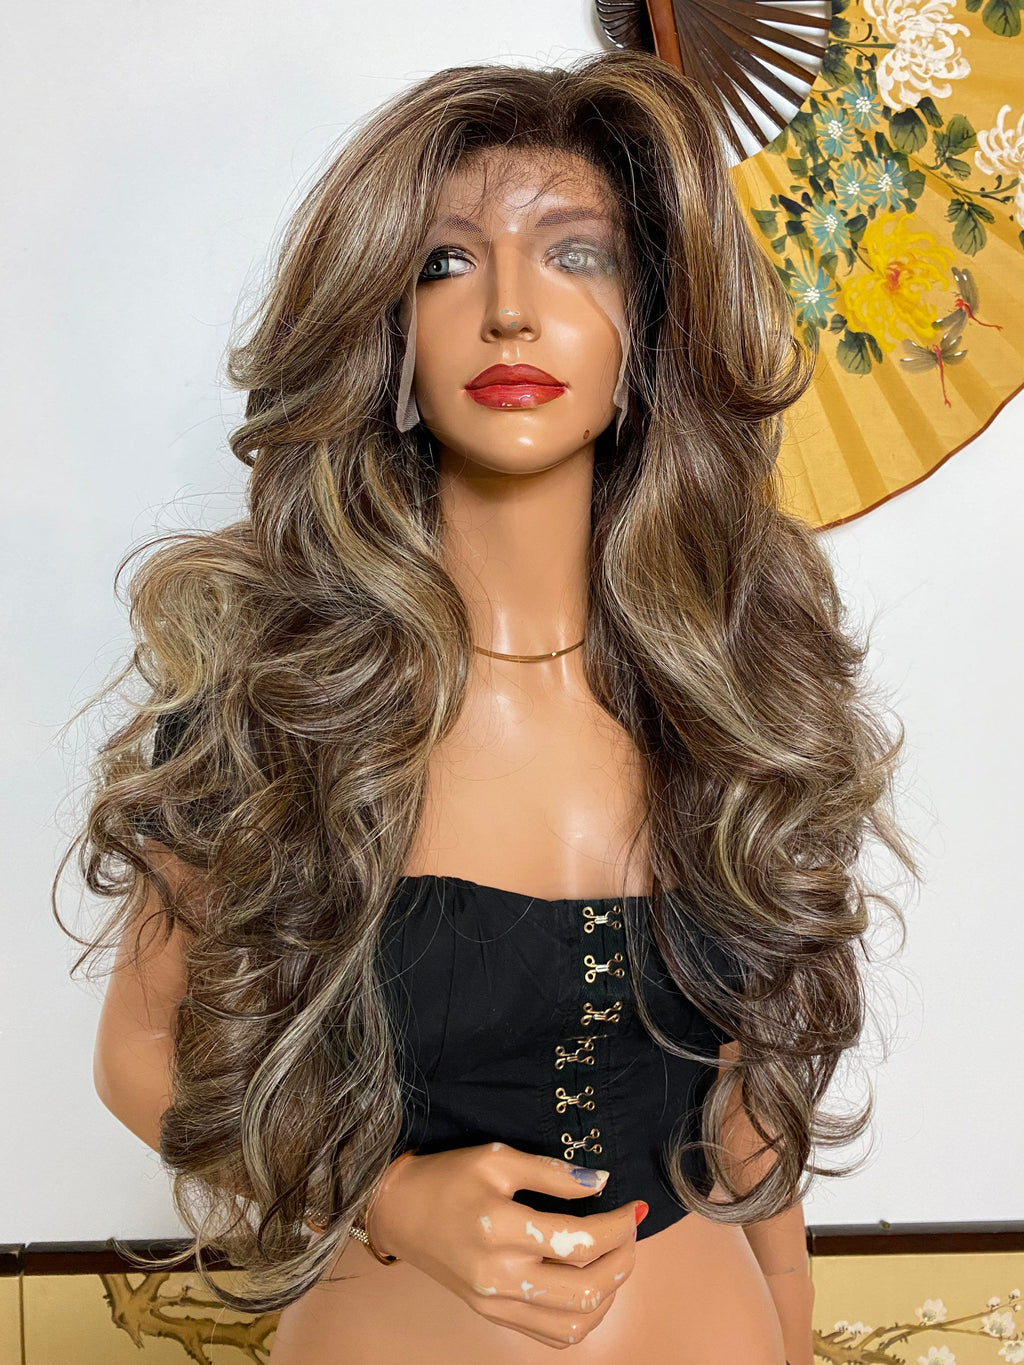 CAROLINA* balayage ash blonde layered curls |LUXURIOUS 13x6 ILLUSION lace frontal wig 28""